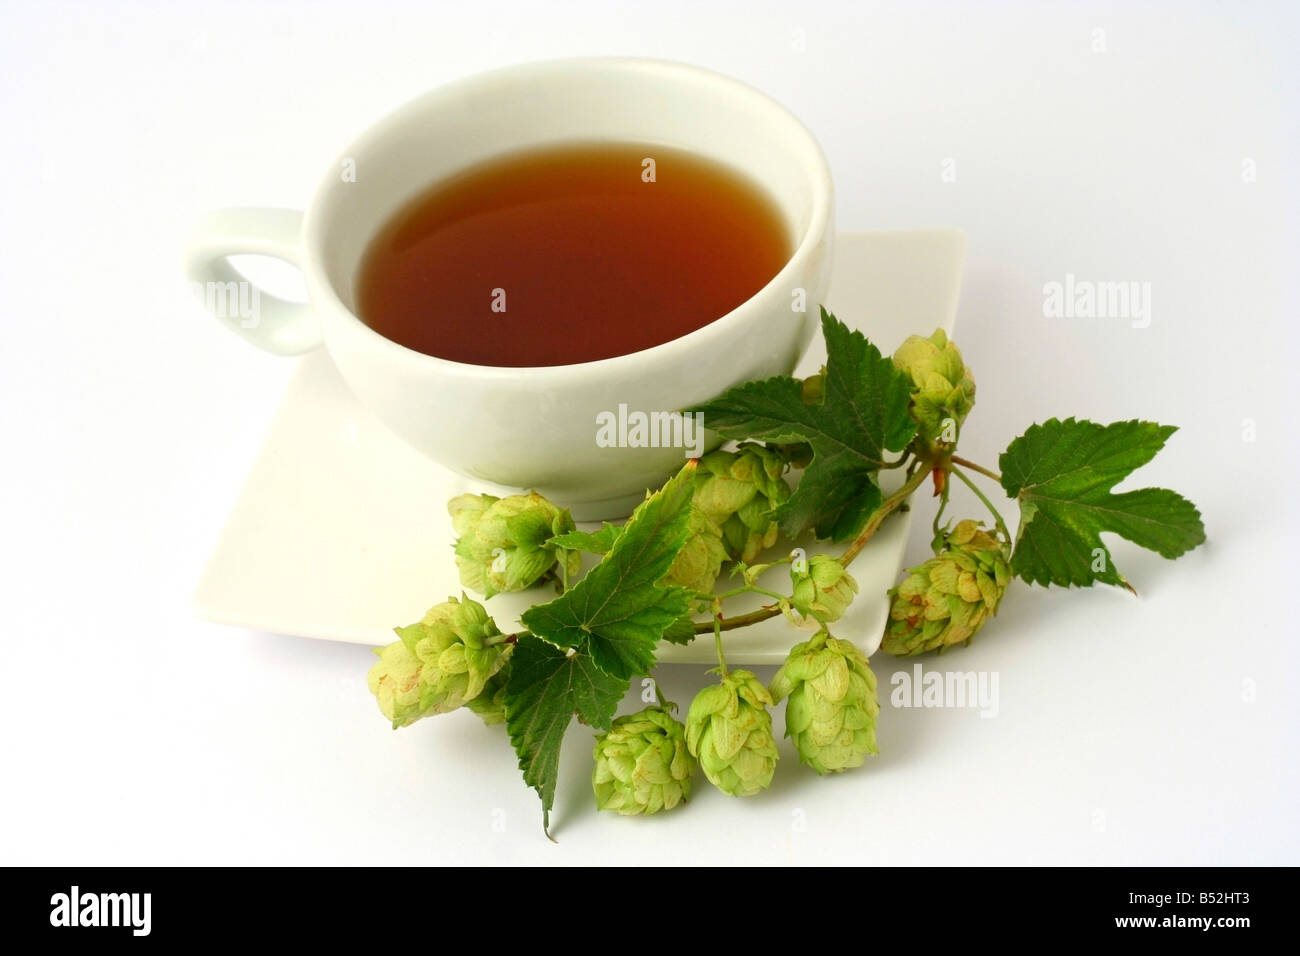 Brewer's hops infusion Humulus lupulus - Stock Image